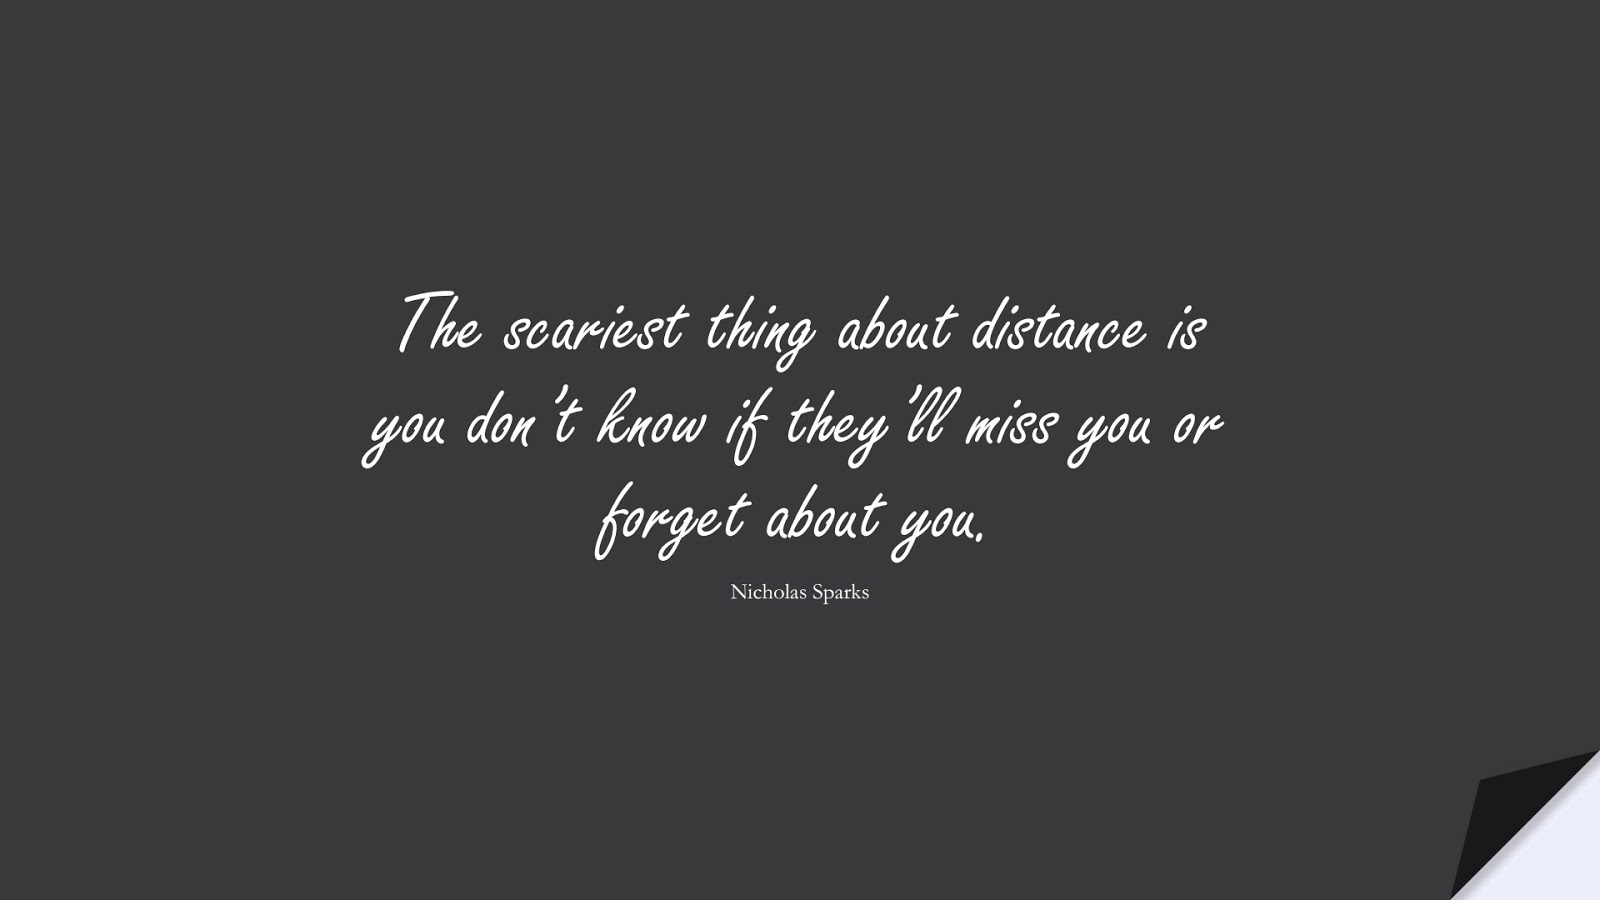 The scariest thing about distance is you don't know if they'll miss you or forget about you. (Nicholas Sparks);  #LoveQuotes